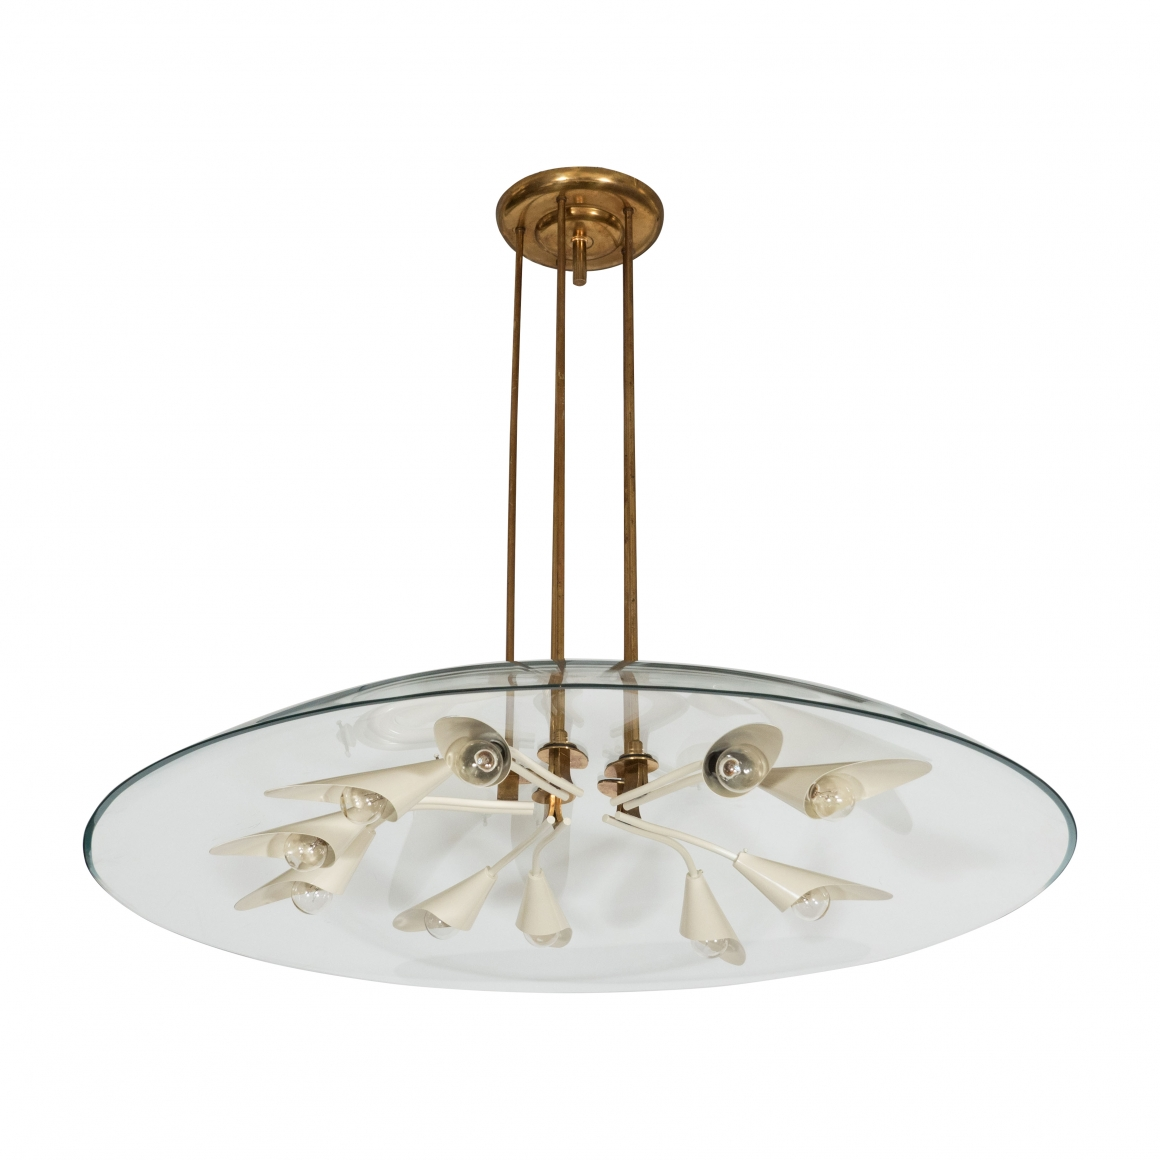 Pietro chiesa fontana arte glass and tole chandelier collections ea4108 aloadofball Choice Image